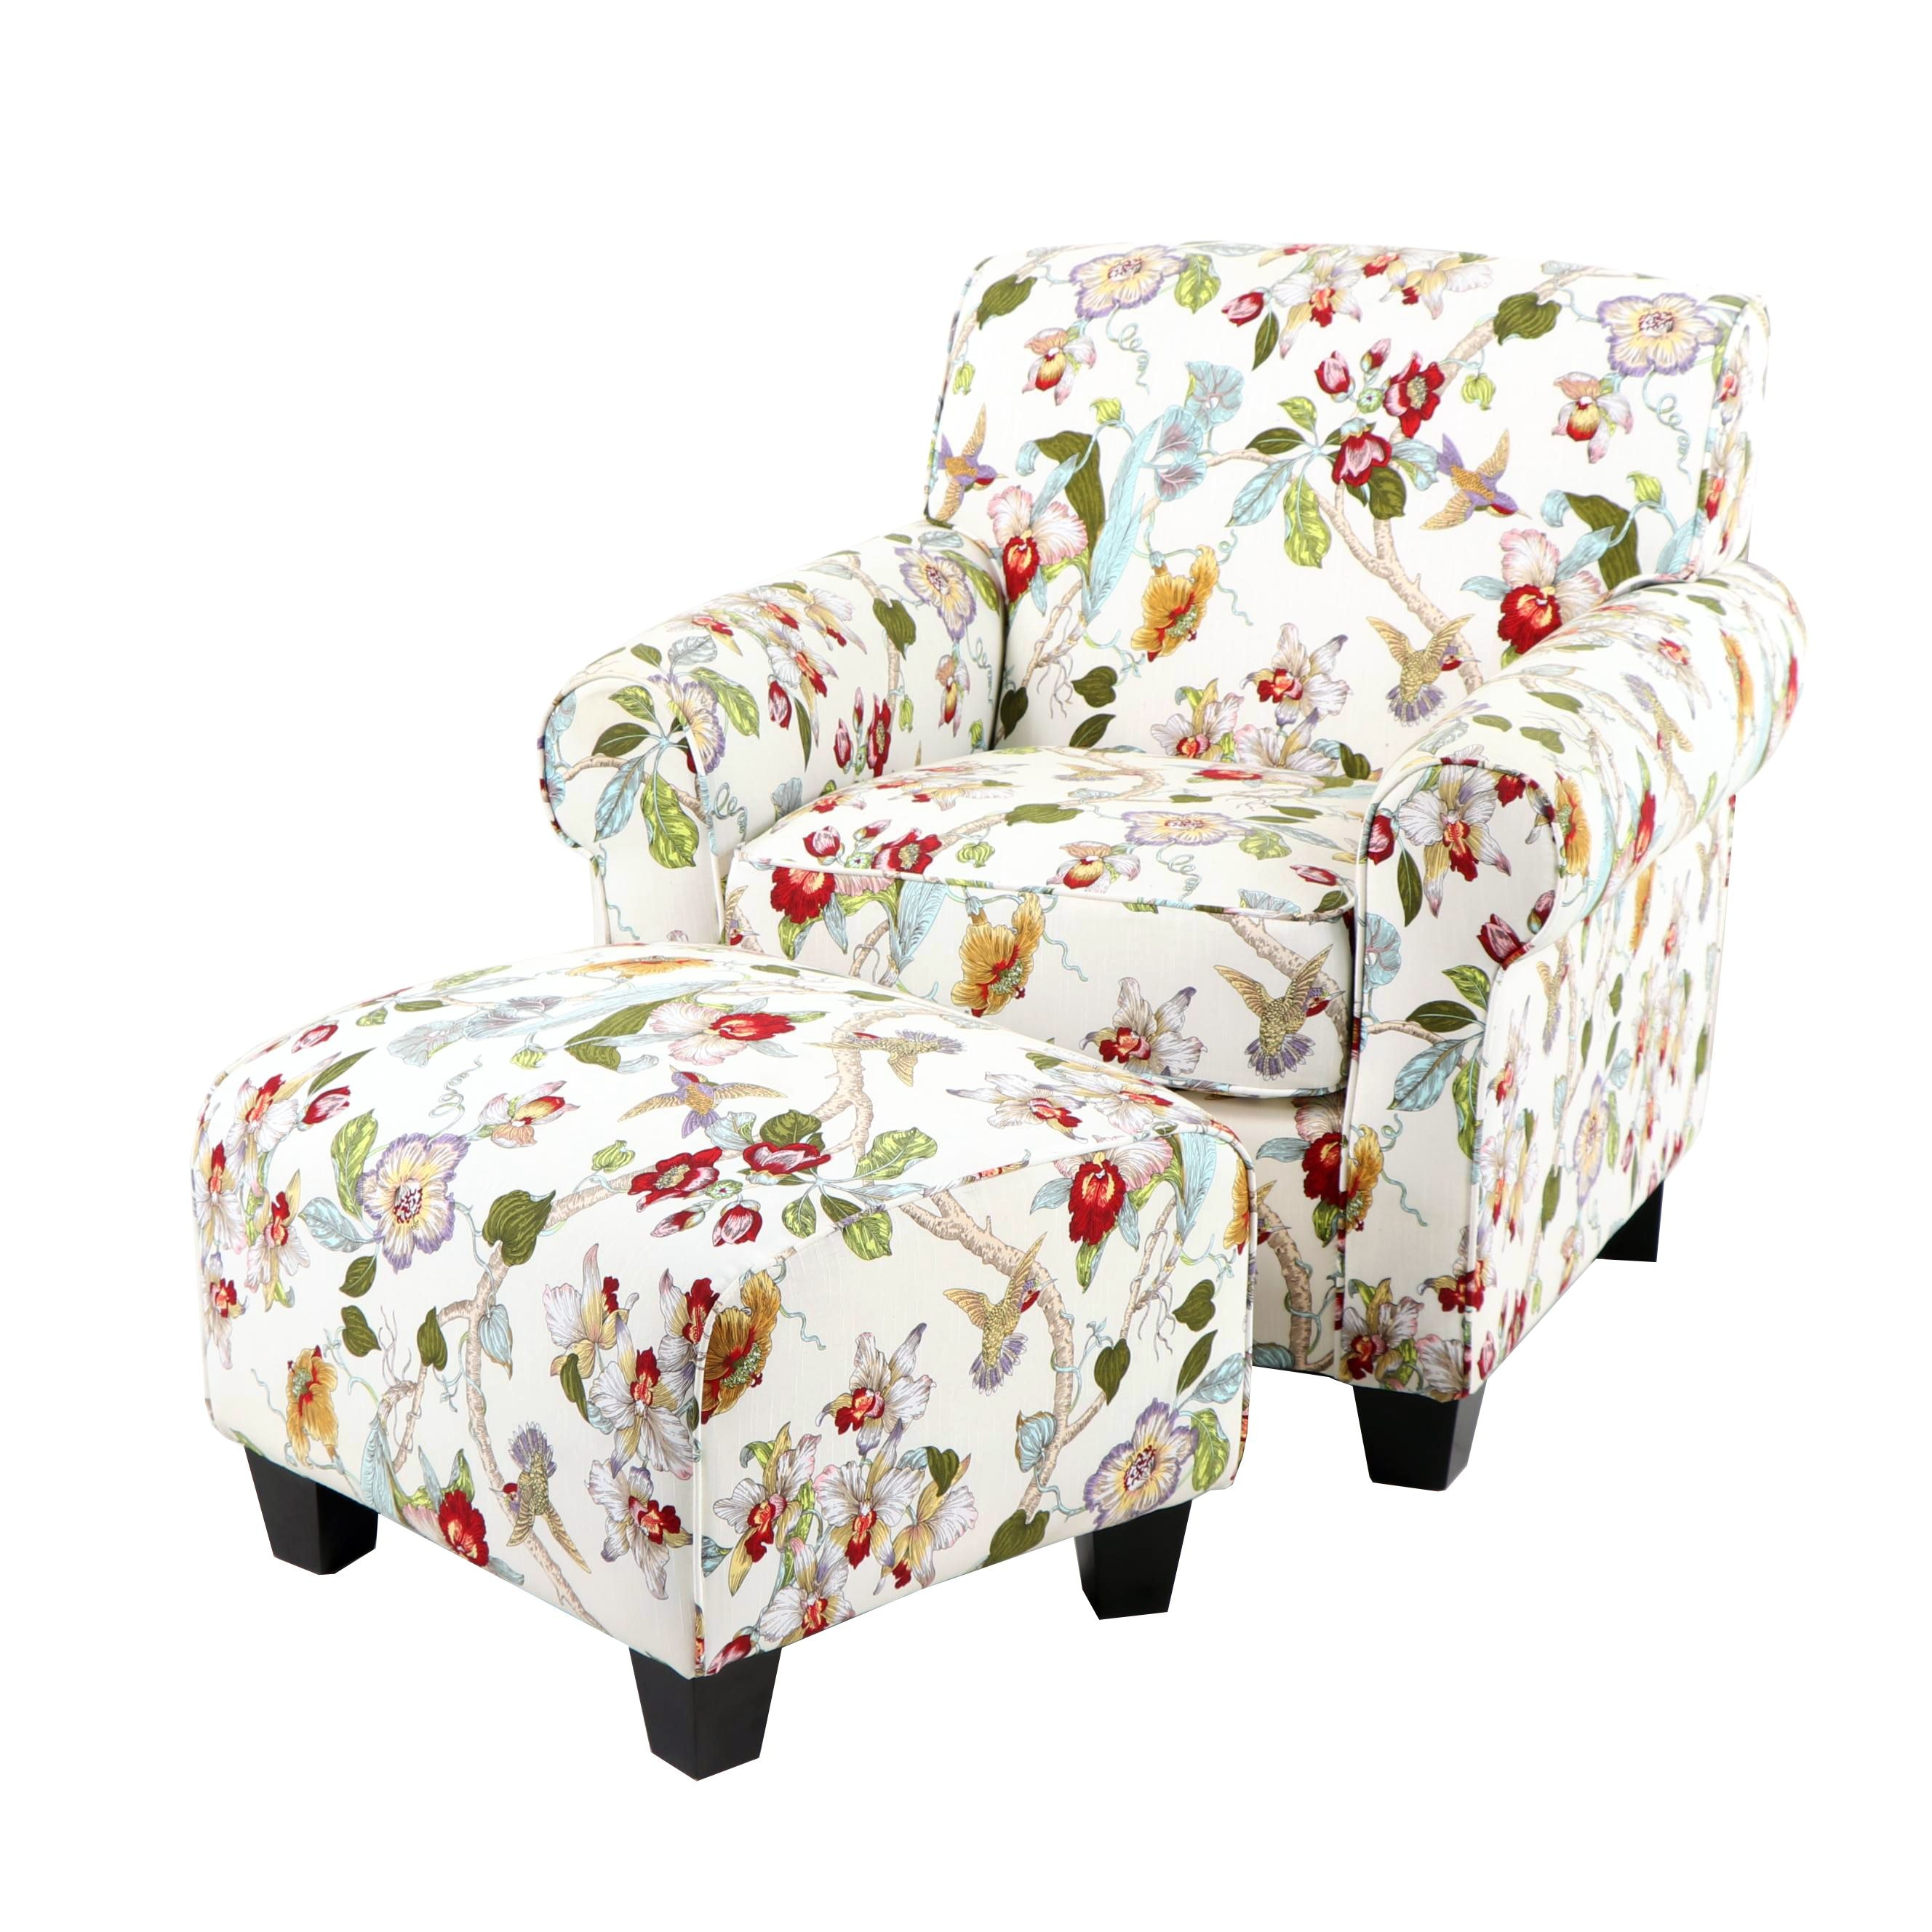 Floral Upholstered Armchair and Ottoman by Handy Living